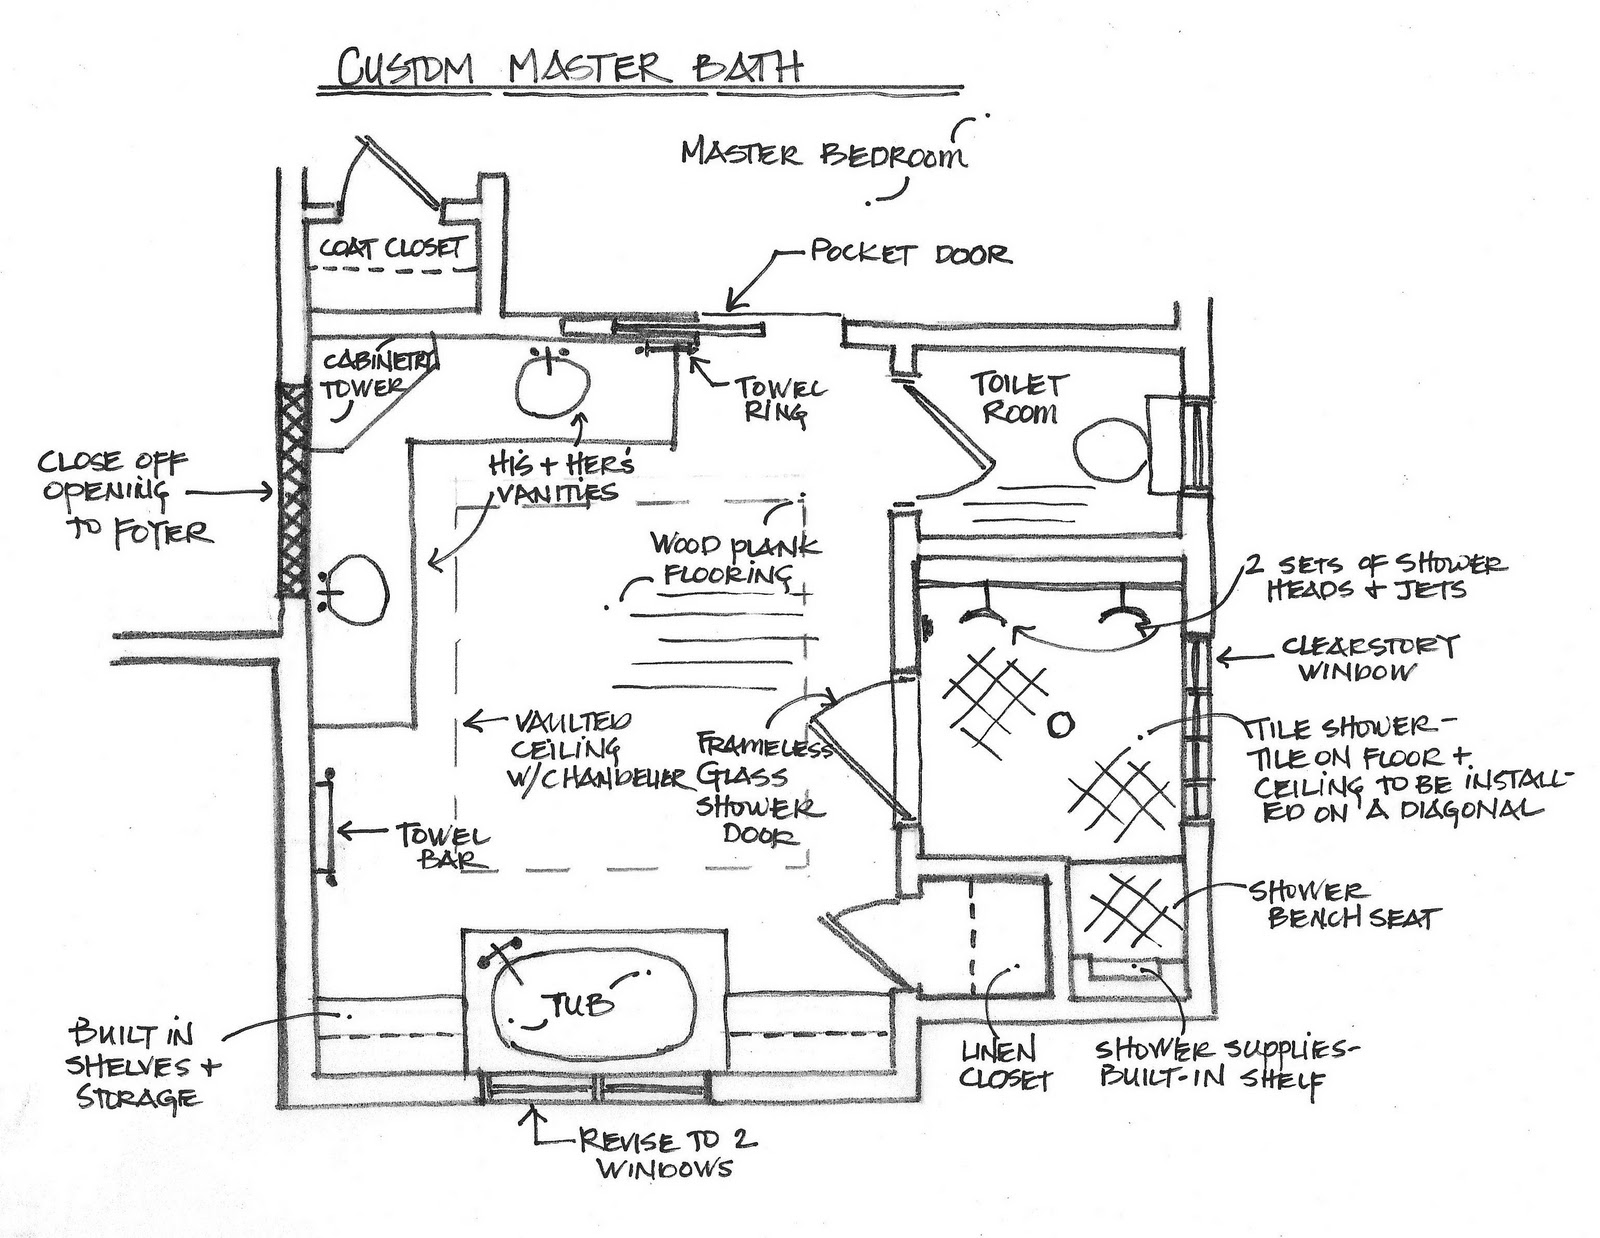 Master bathroom layouts for small spaces home decorating for Bathroom layout design